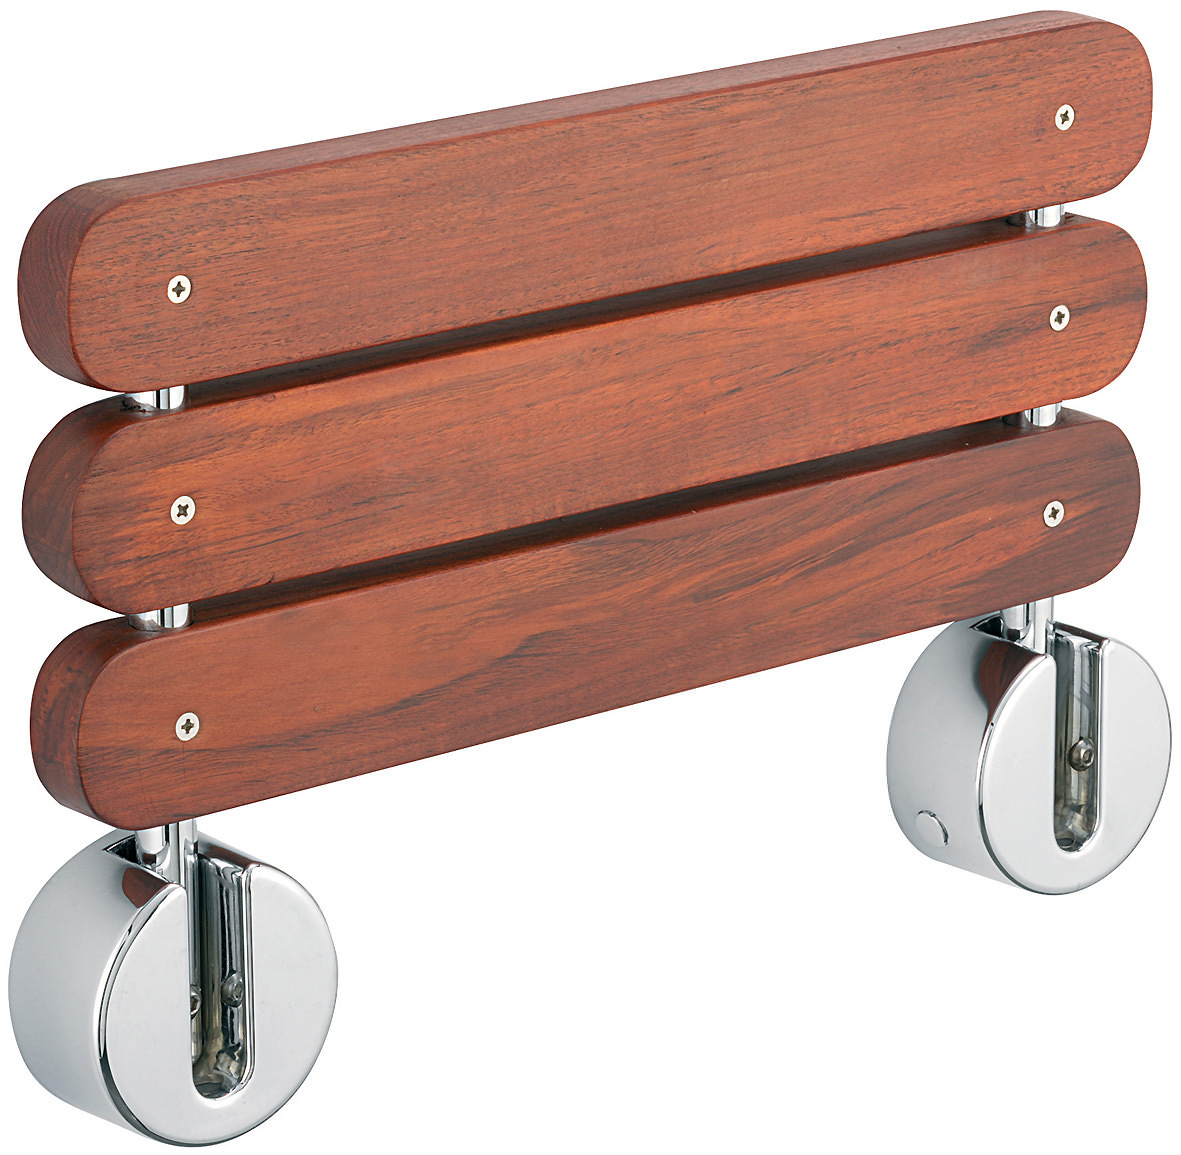 Tre Mercati Miscellaneous Folding Wooden Shower Seat